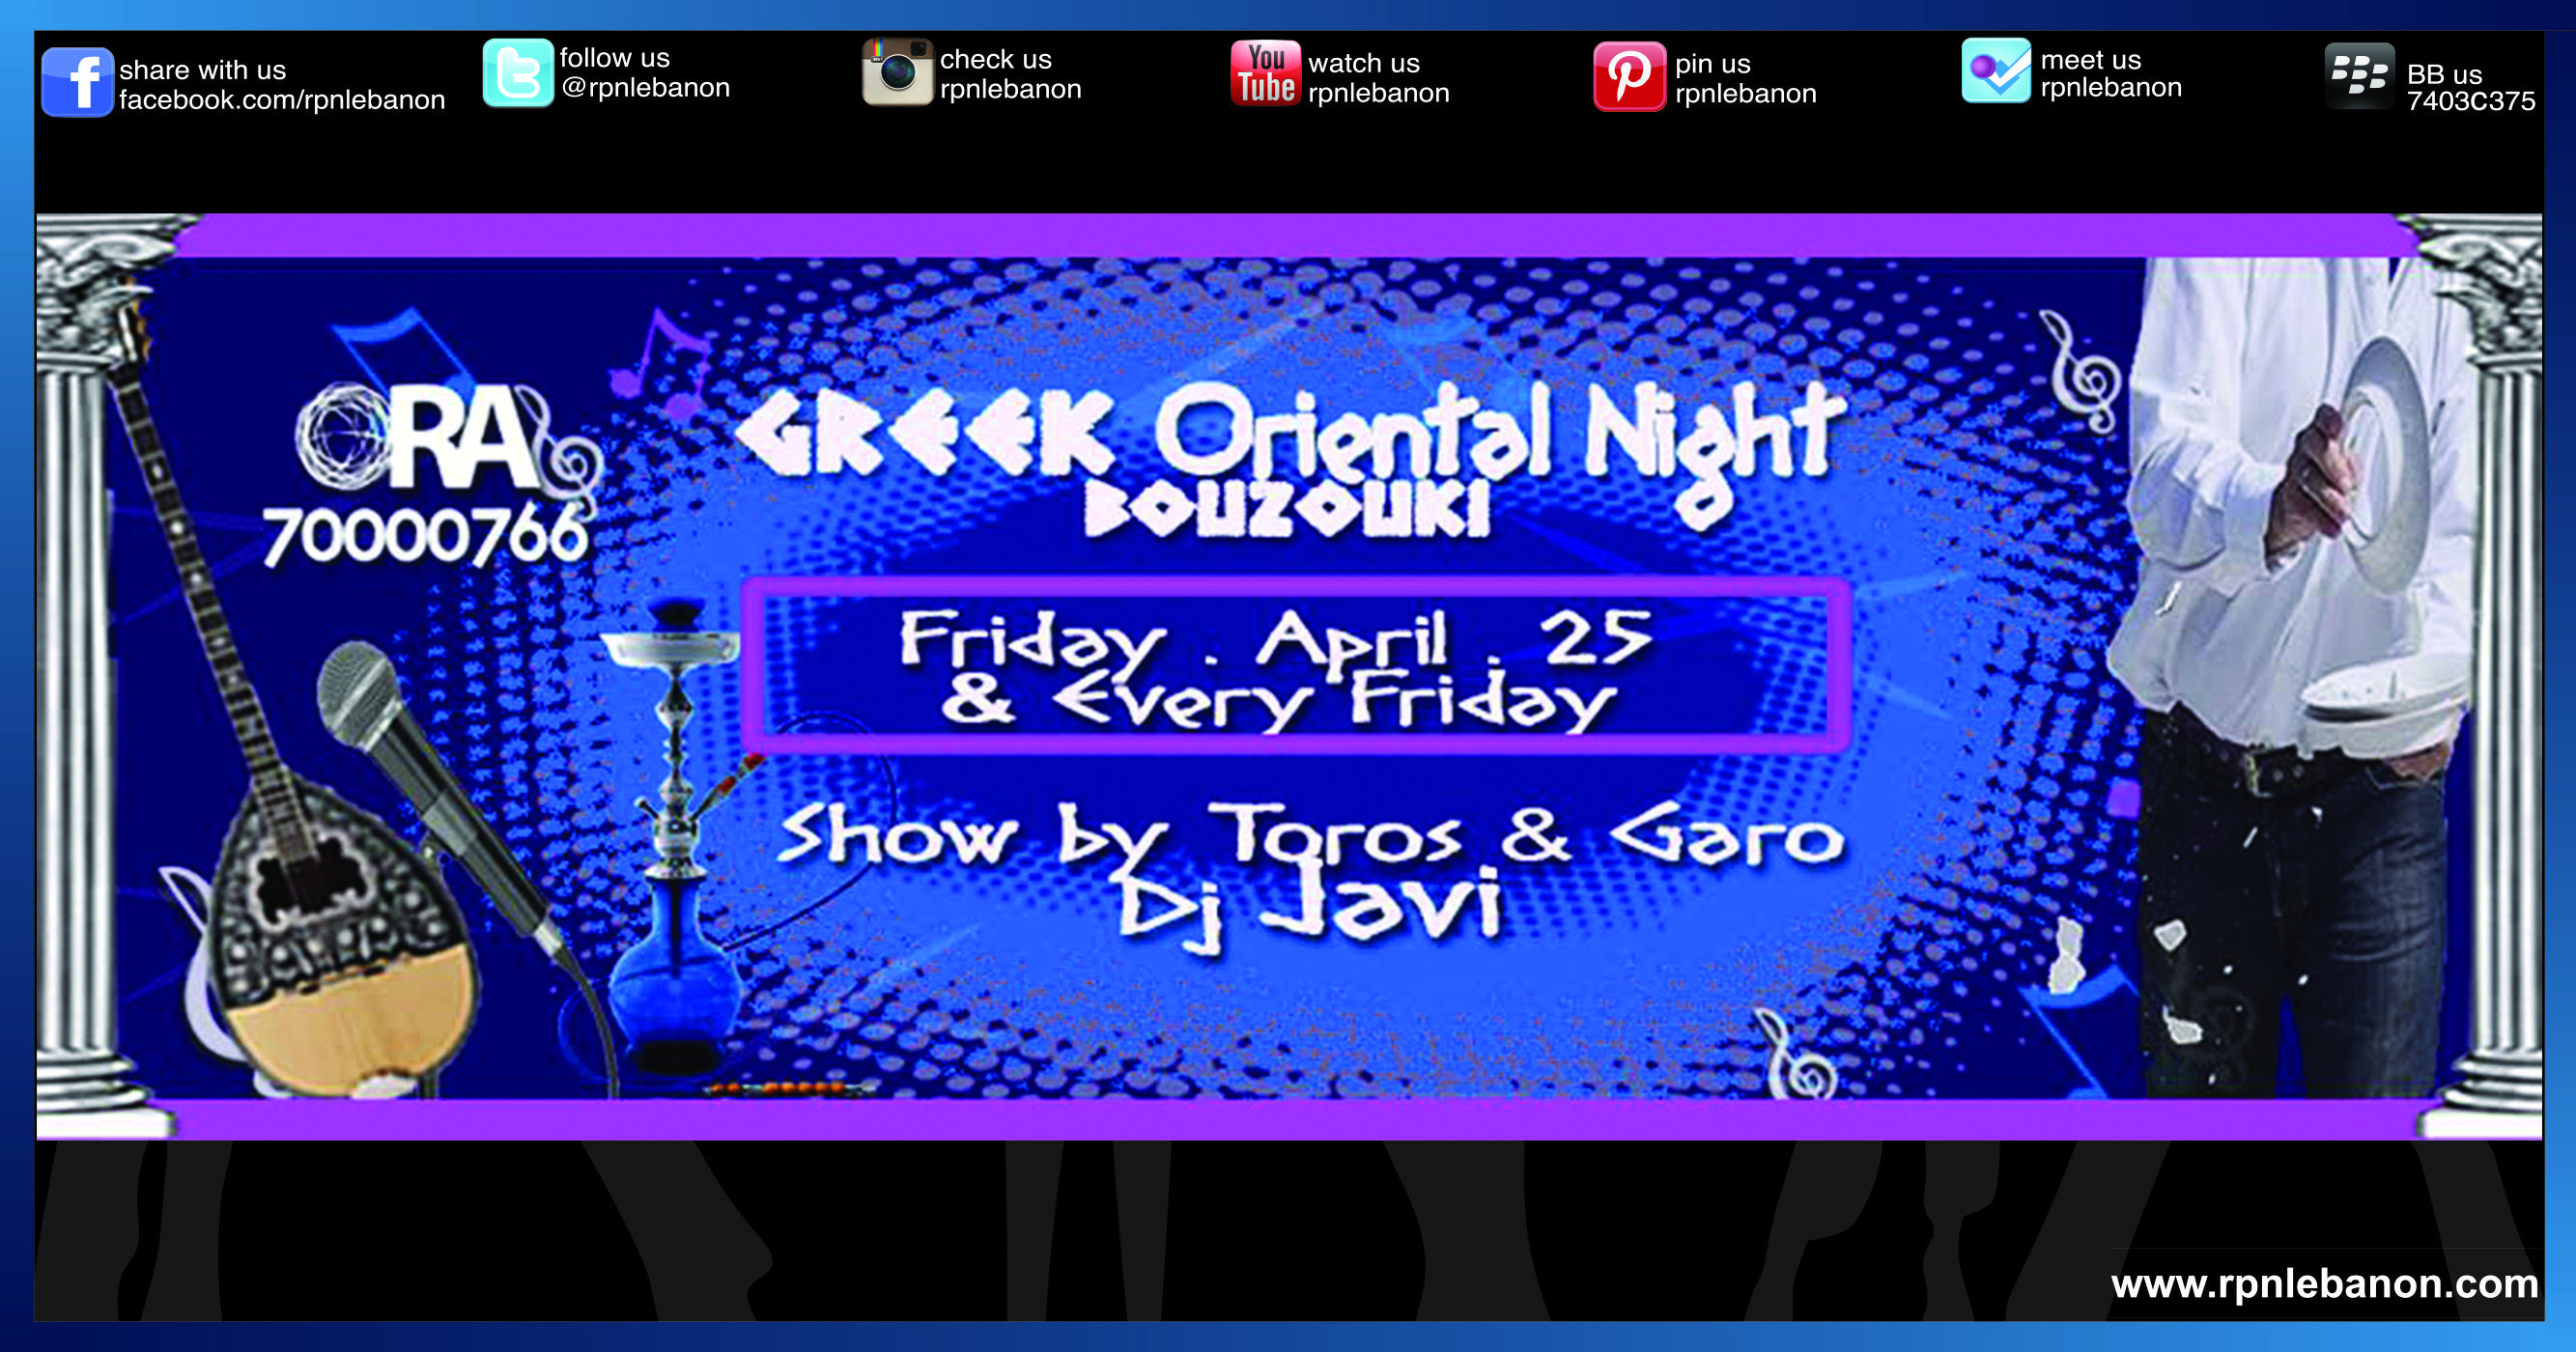 """This #Friday and every Friday Ora Beirut presents """"#Greek #Oriental #Night'', a true Greek party with live #music and #dancing to the sounds of #Greece, the sounds of #Bouzouki. Live show by #Toros & #Garo followed by Ora's resident #Dj #Javi. Reserve now your table 70 000 766"""